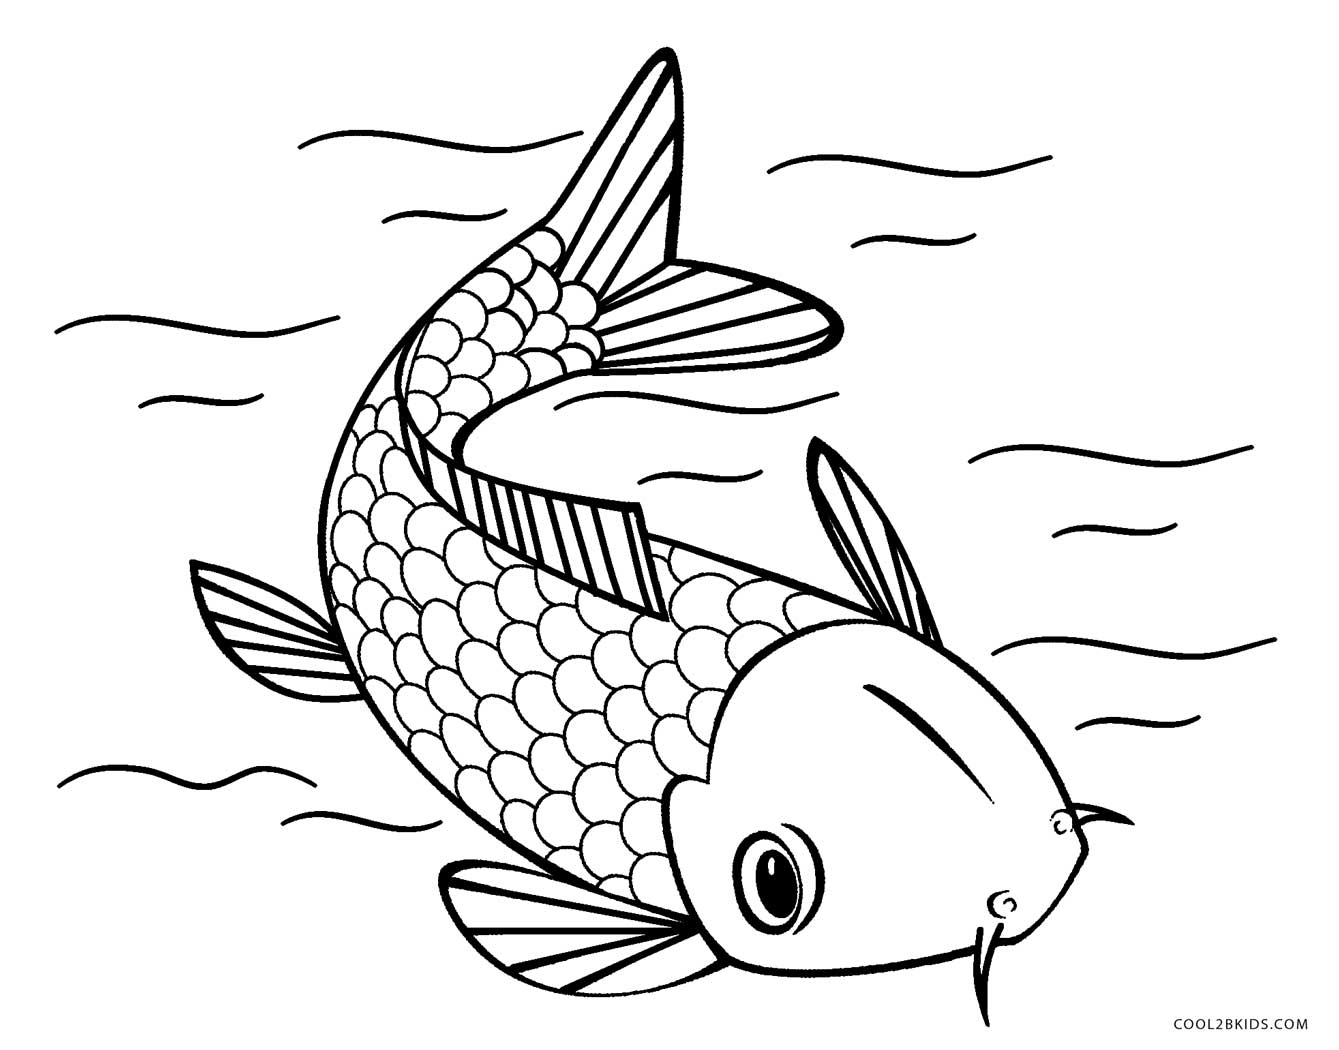 japanese fish coloring pages - photo#24